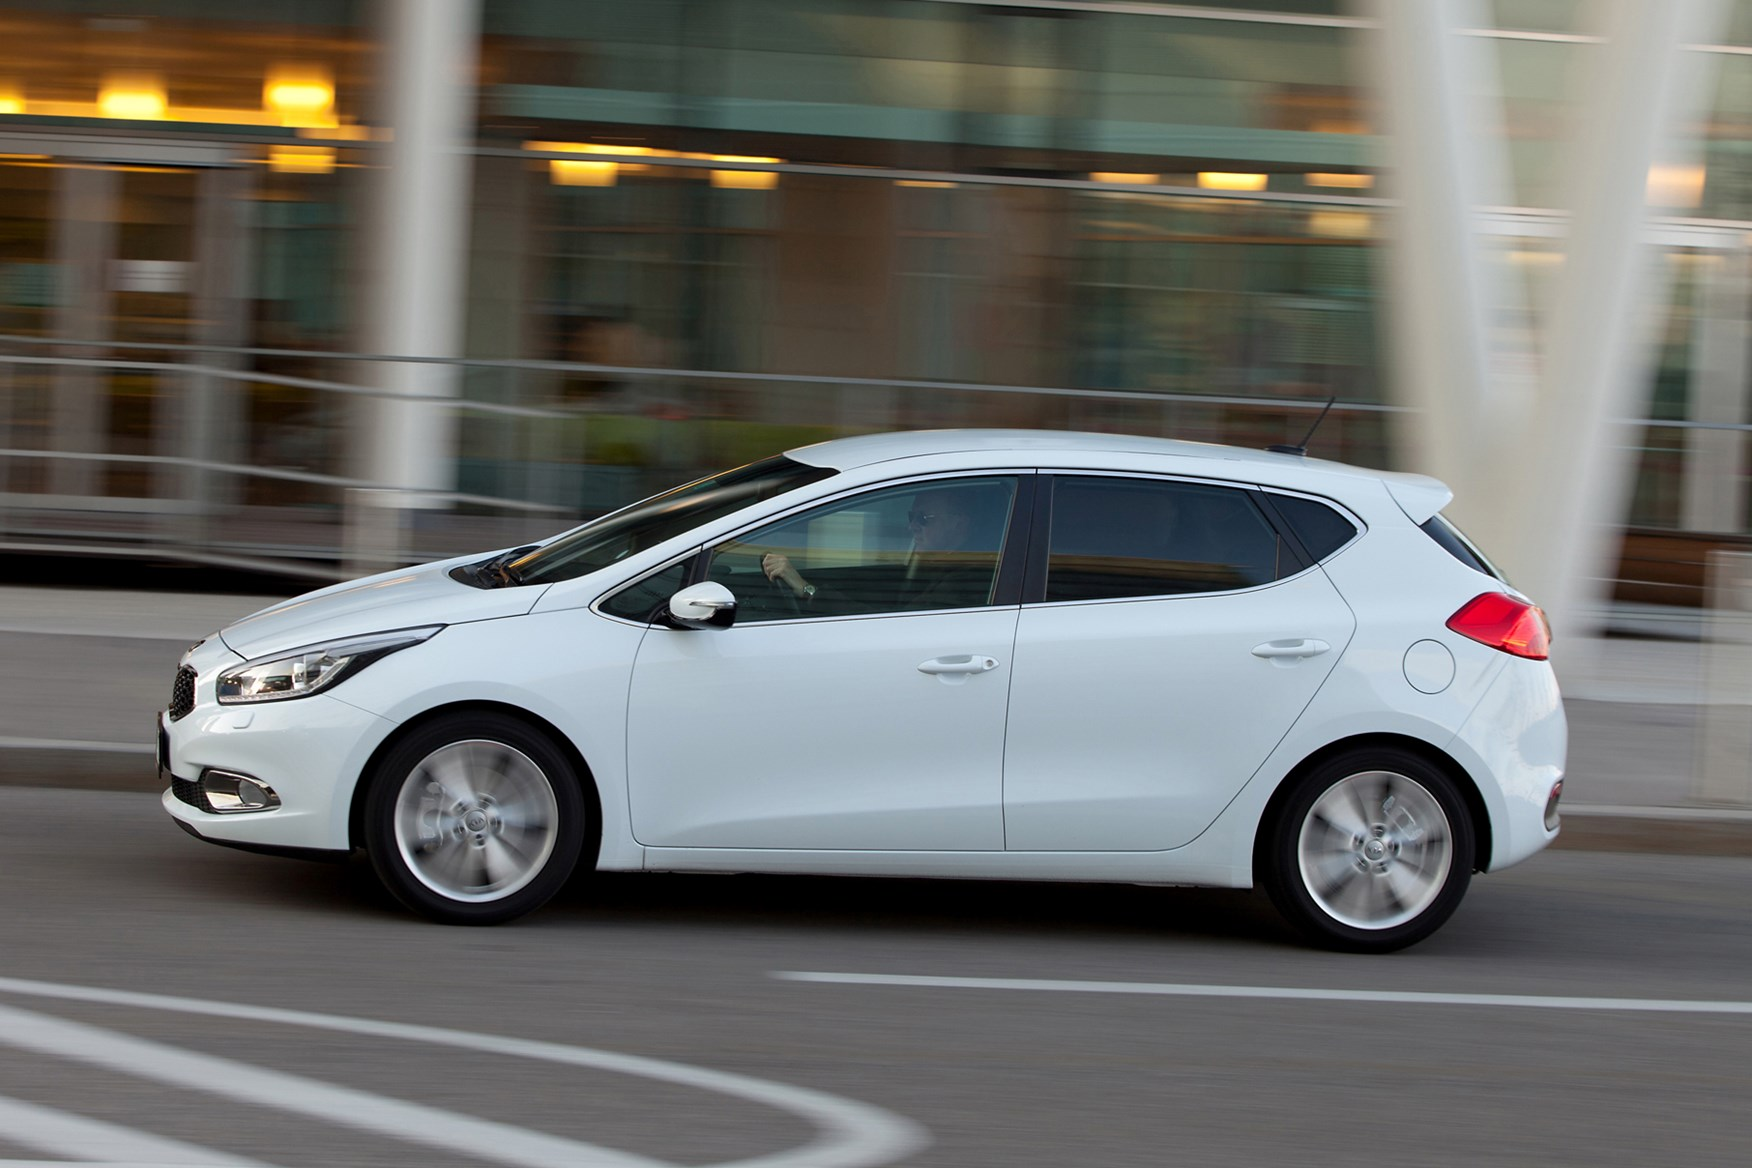 Hatchbacks For Sale >> Kia Ceed Hatchback Review (2012 - ) | Parkers